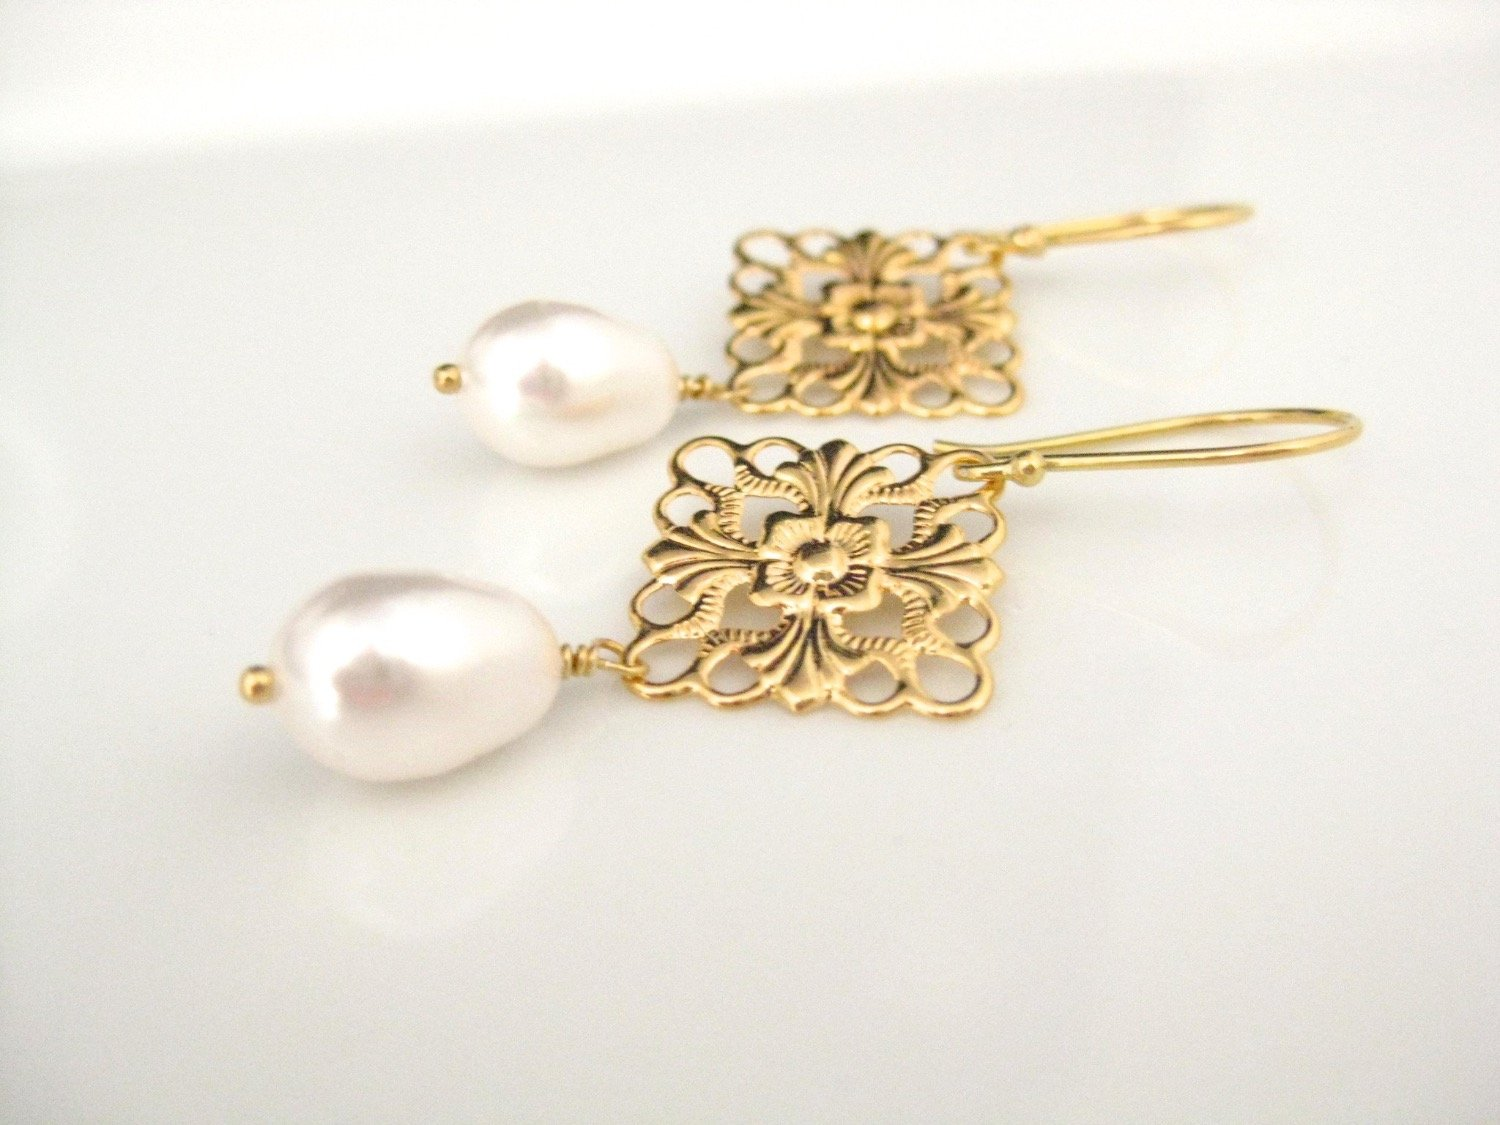 Gold and white pearl earrings bridal jewelry - Clairesbridal - 4